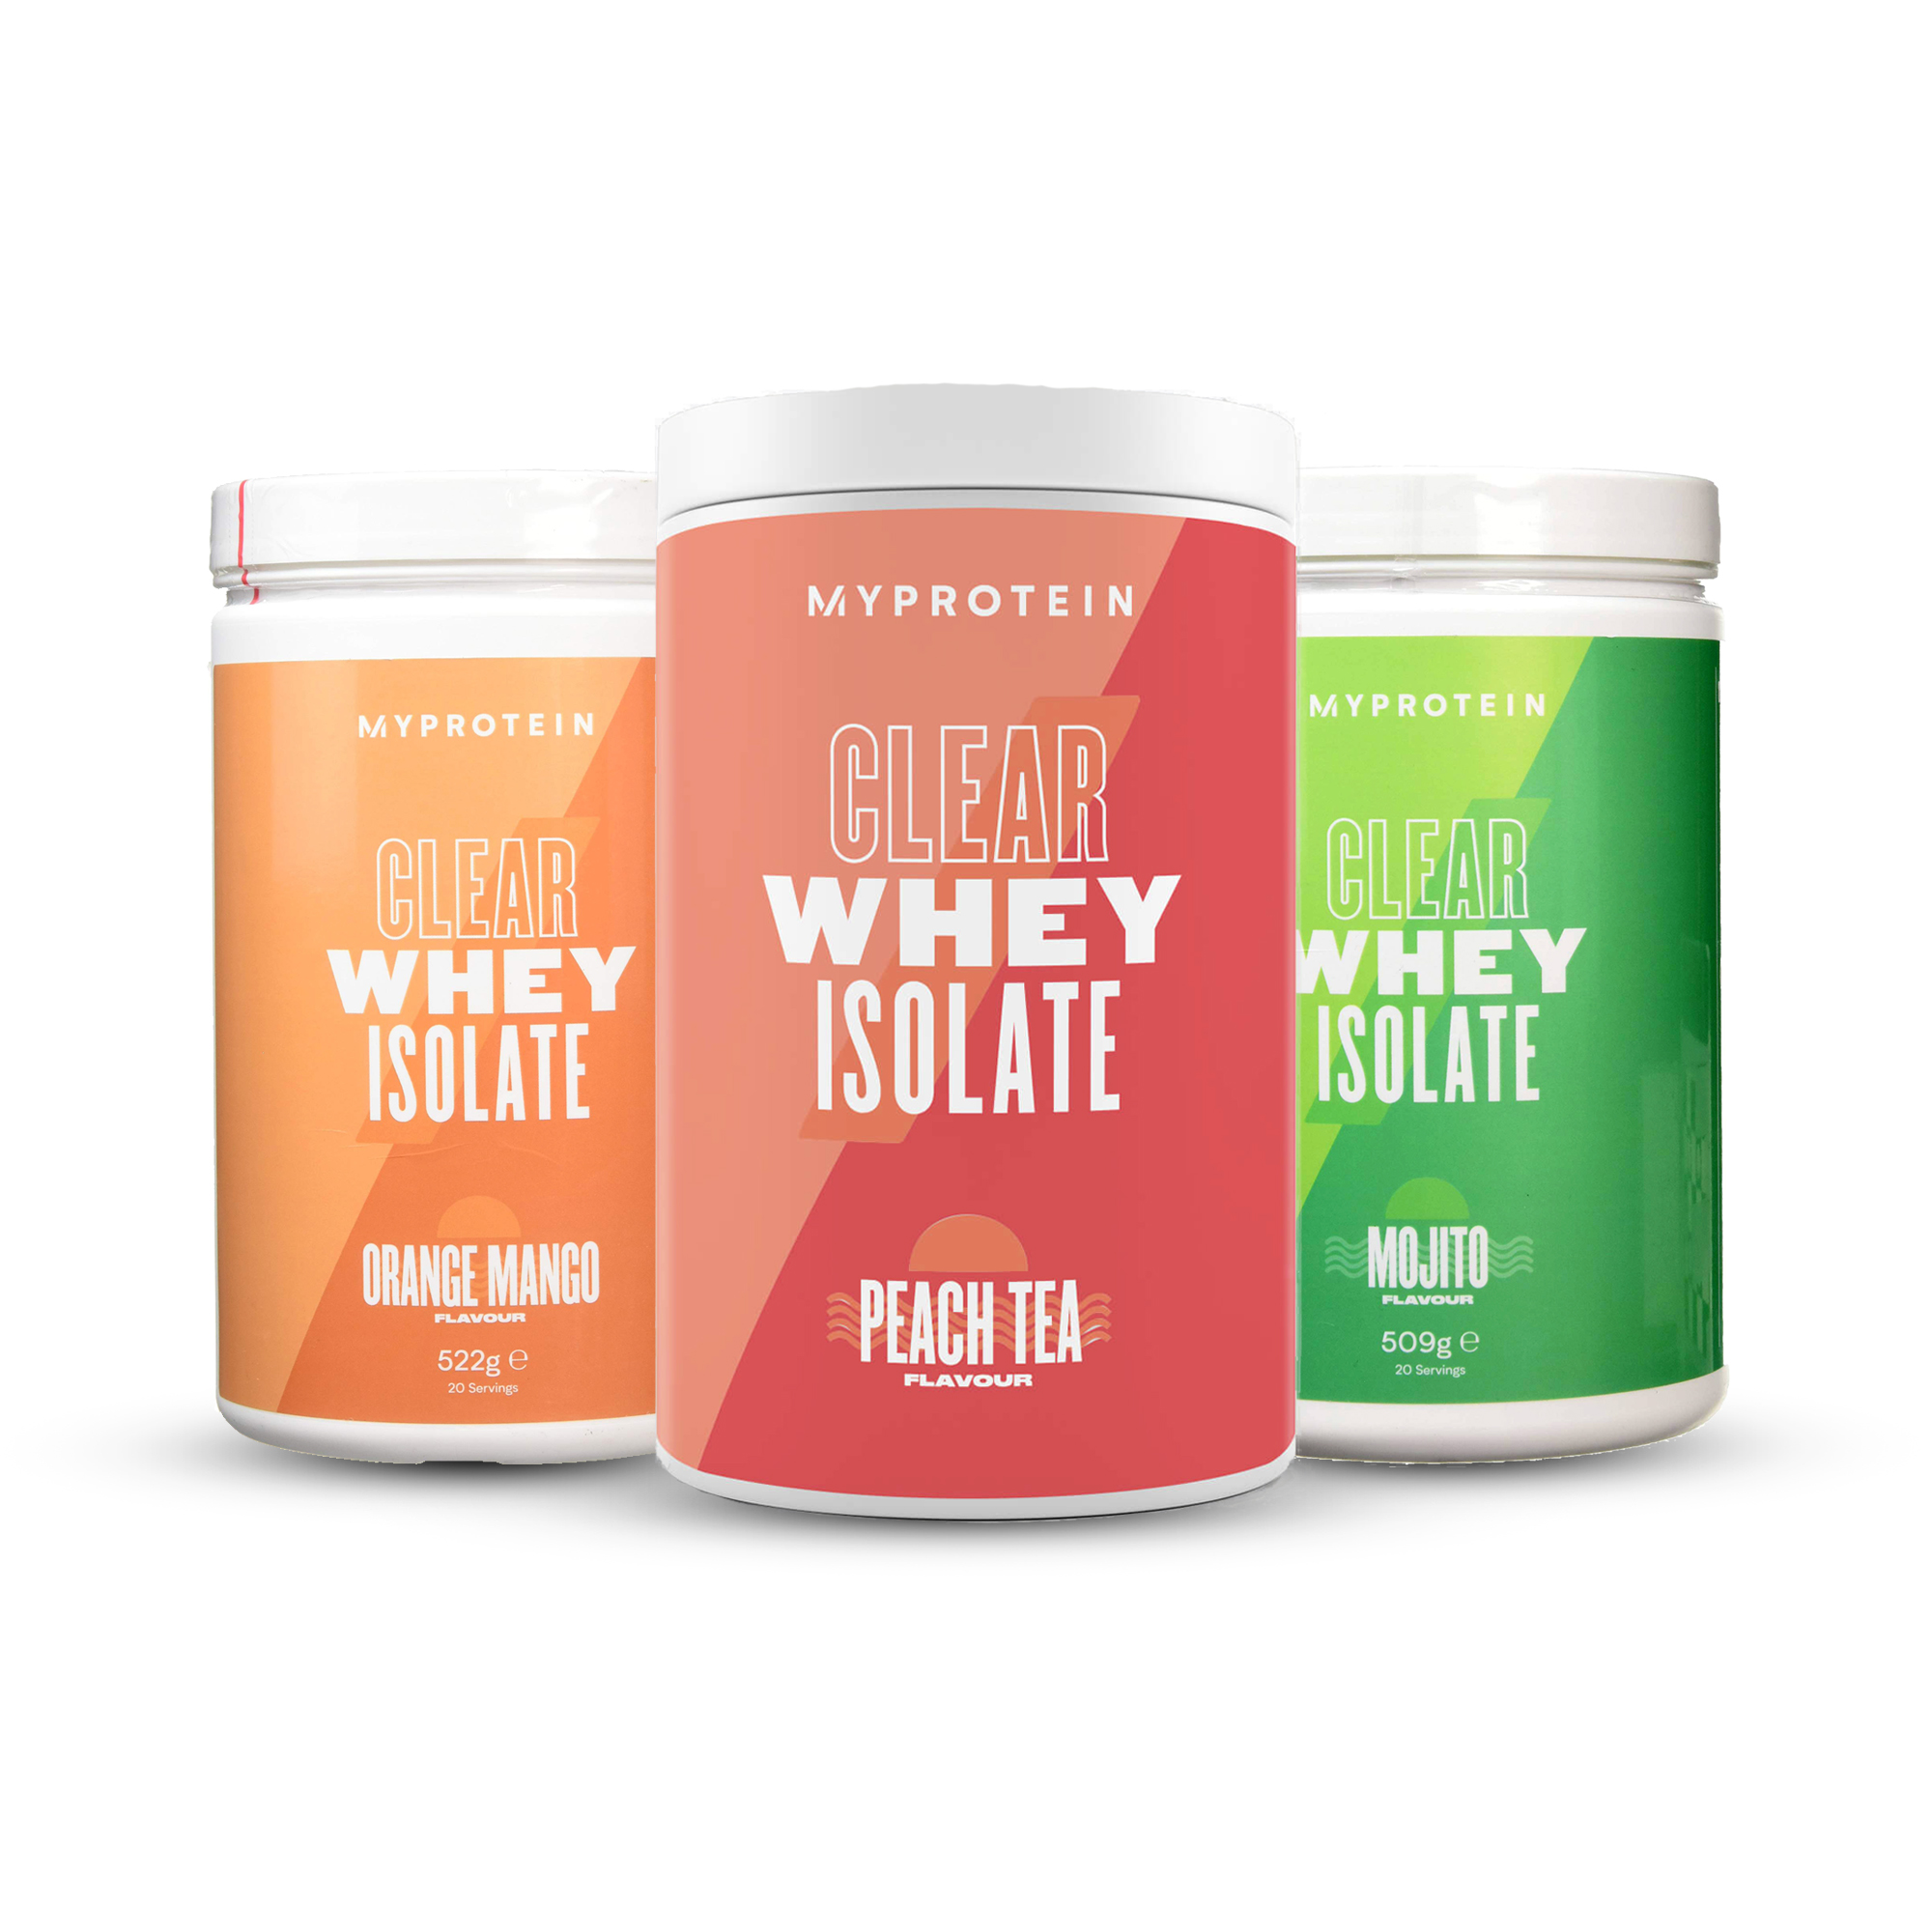 MyProtein Clear Whey Isolate - Nutrition Depot Philippines